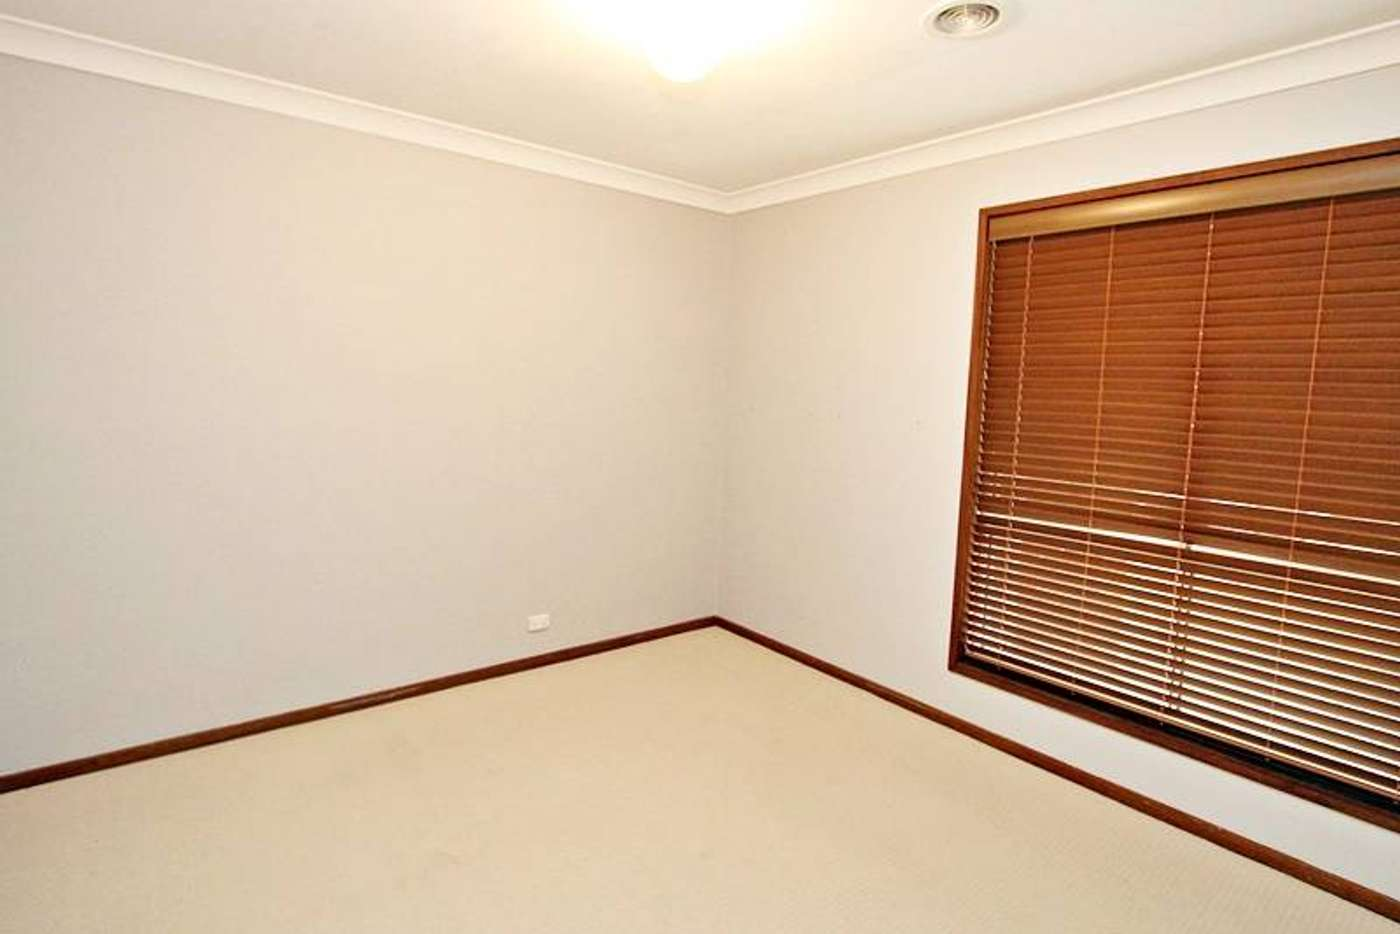 Sixth view of Homely house listing, 28 Langi Crescent, Glenfield Park NSW 2650